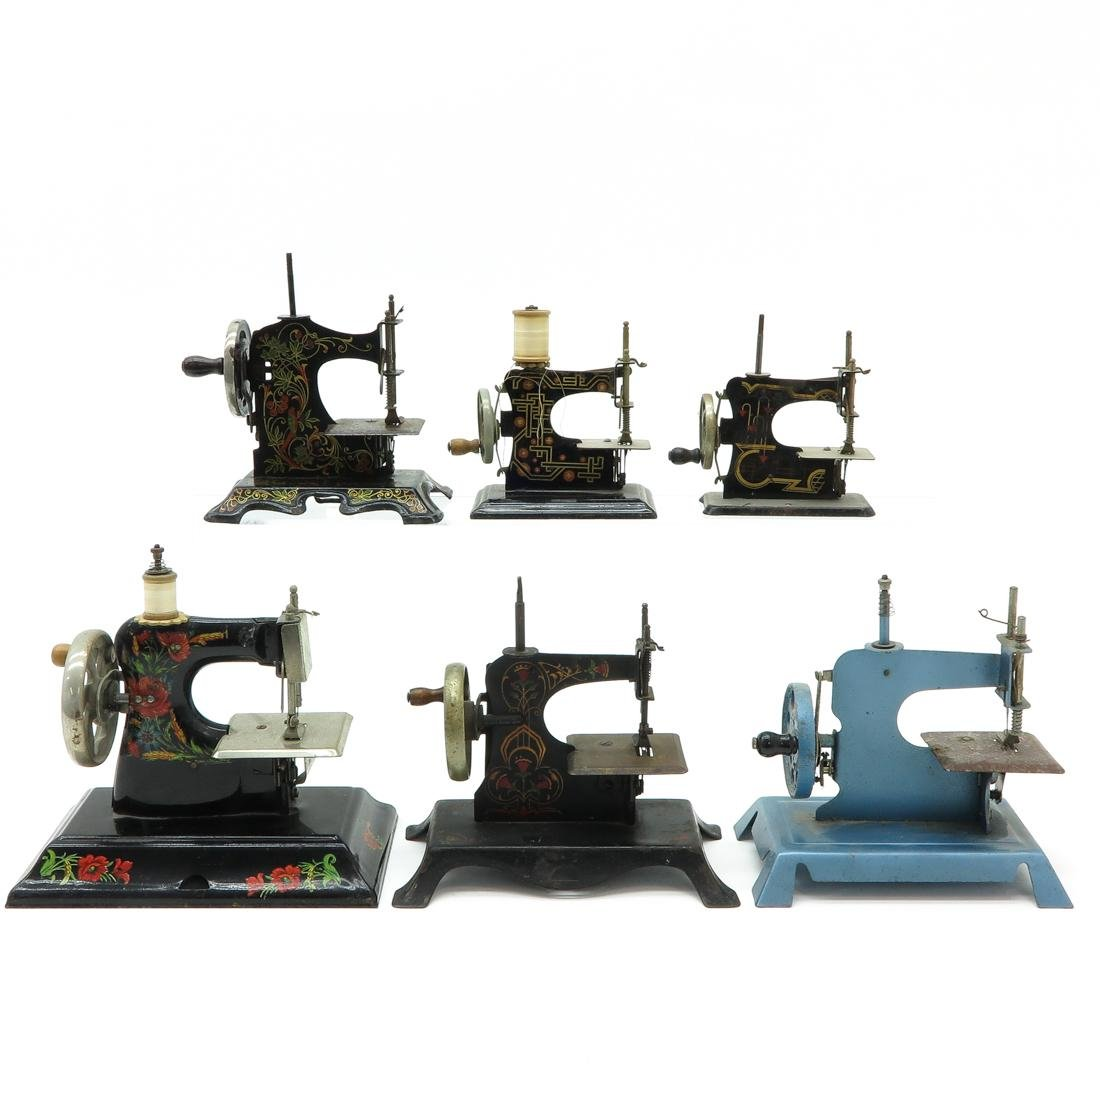 Lot of 6 Vintage Toy Sewing Machines